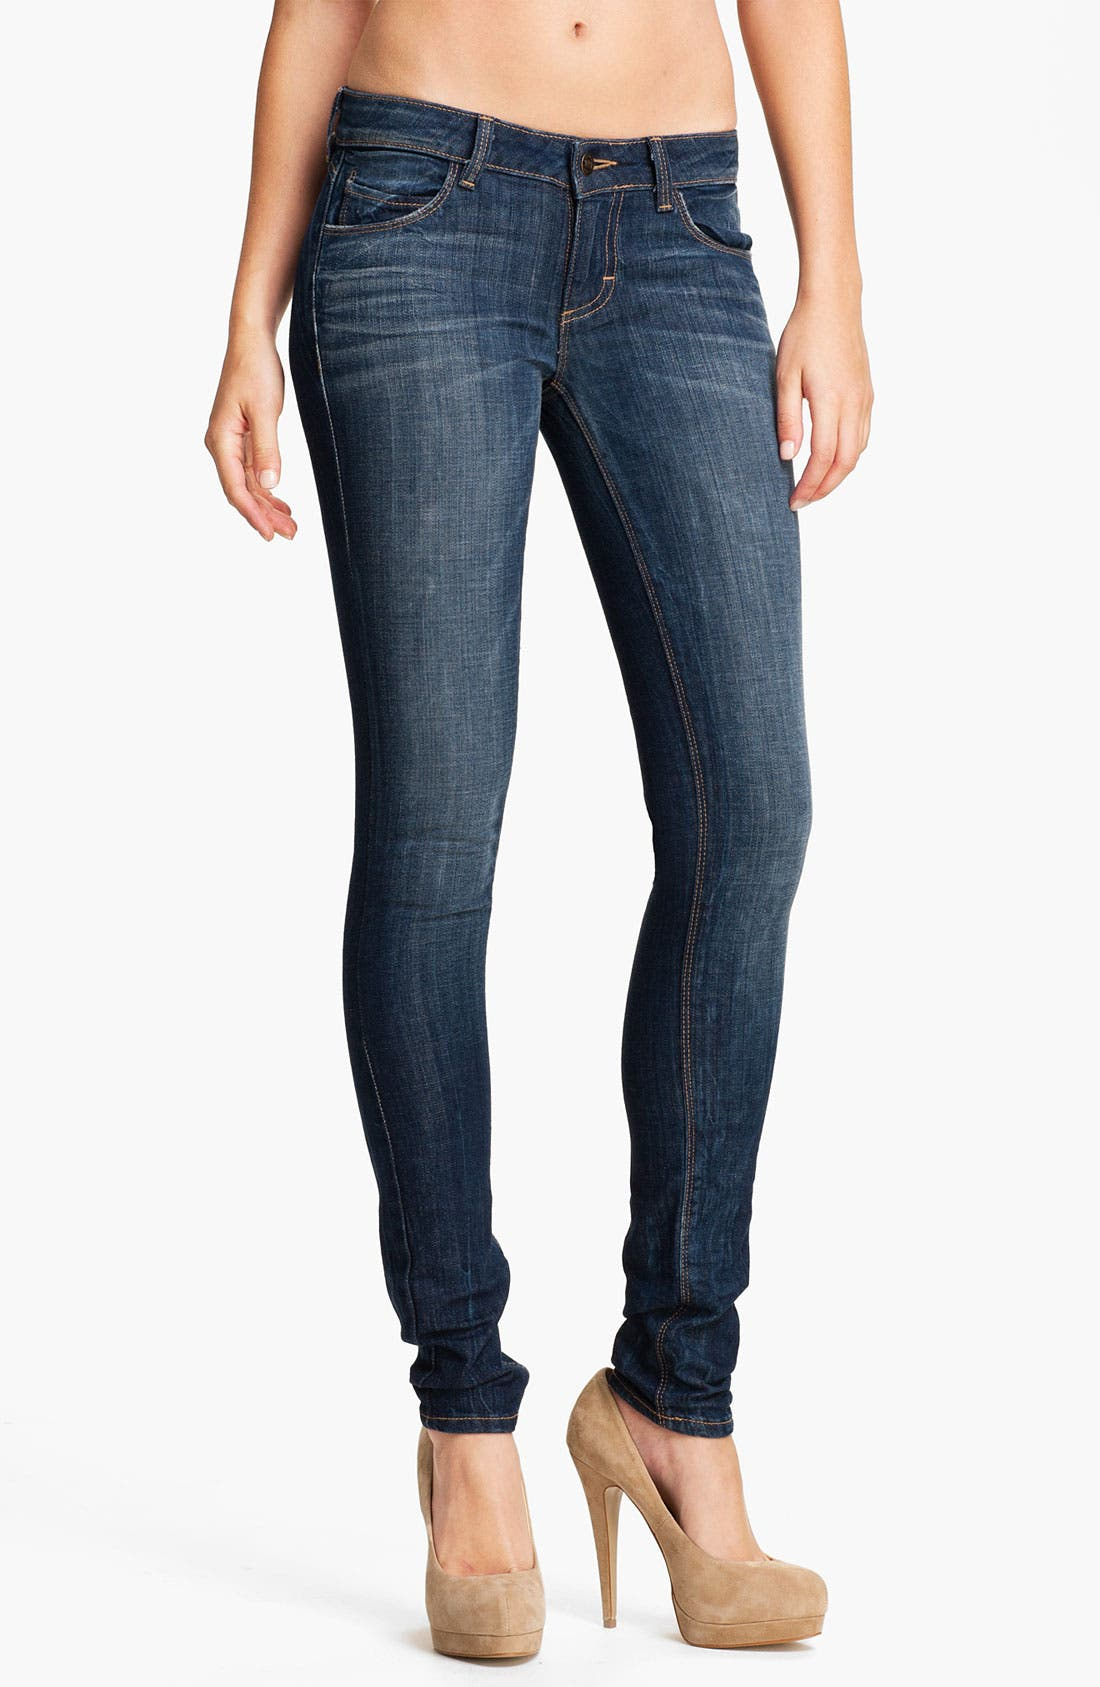 Main Image - Siwy 'Leona' Skinny Stretch Jeans (Rhythm of the Rain)